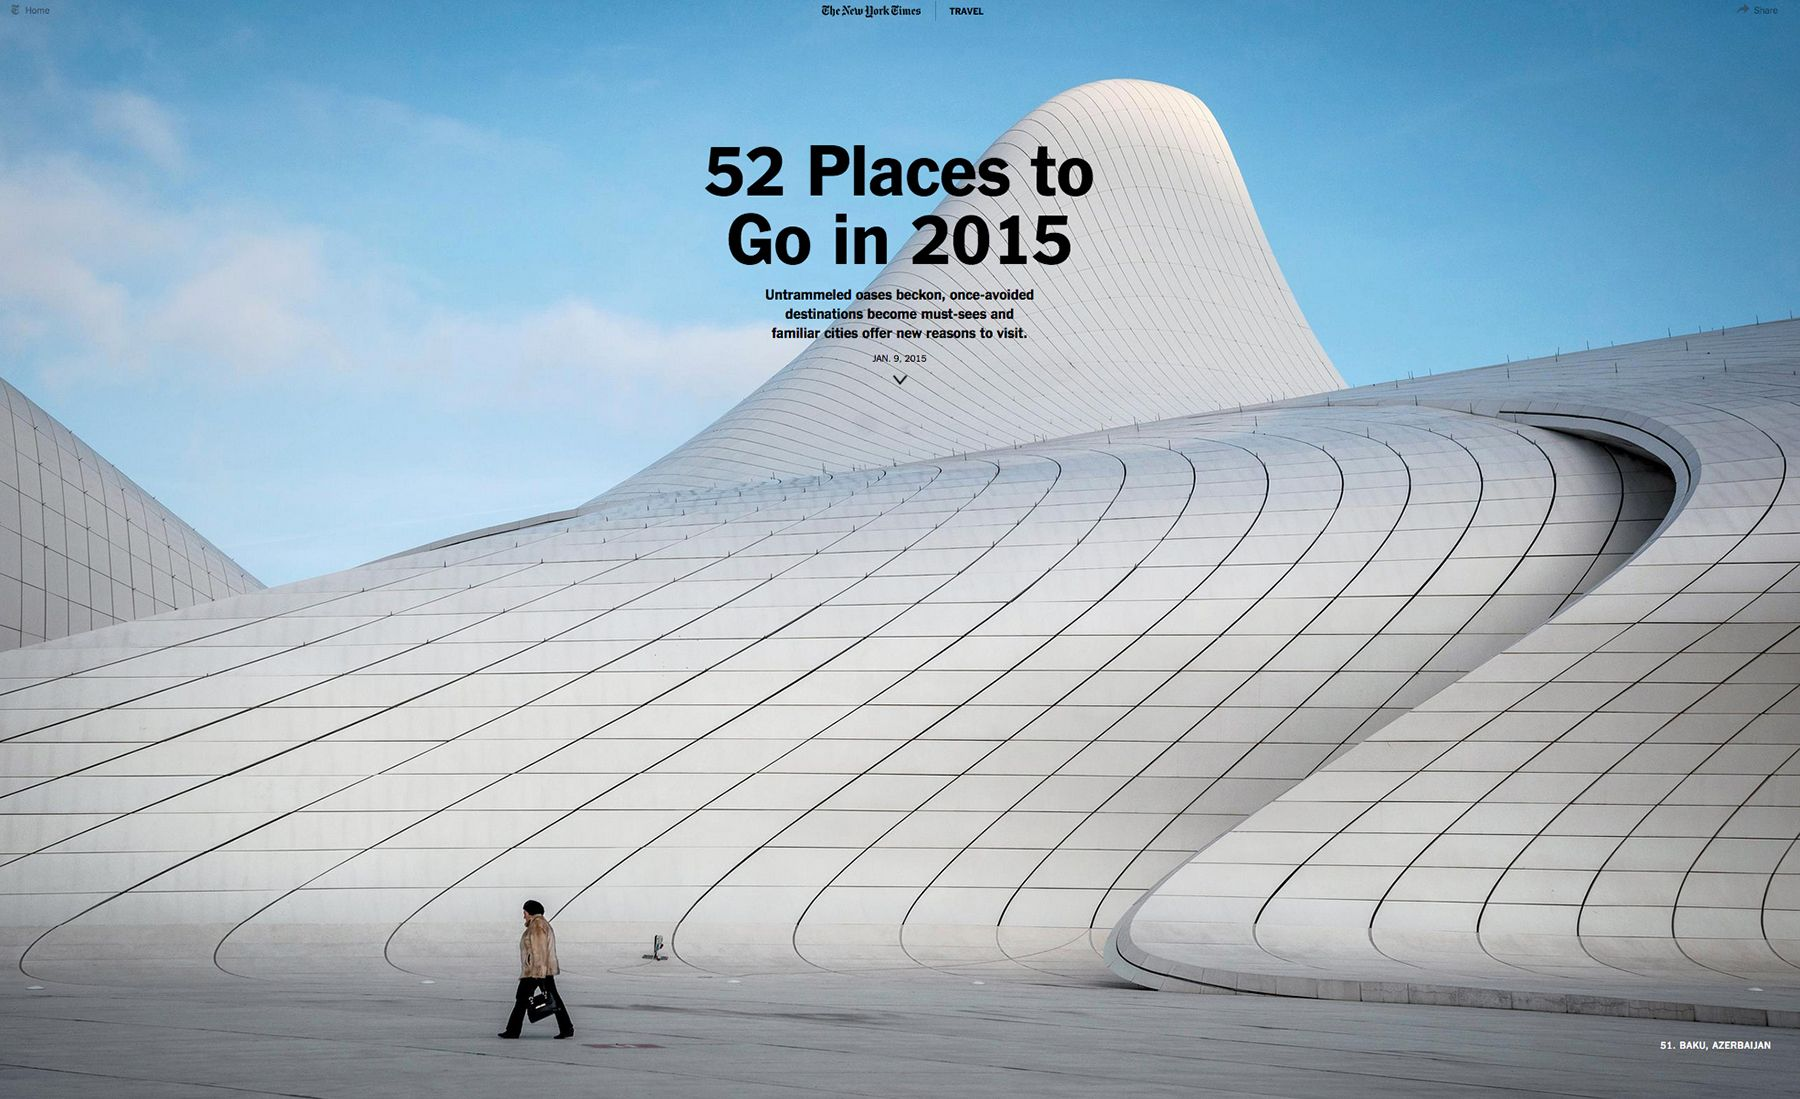 Sergey Ponomarev for The New York TimesBaku, Azerbaijan - 52 Places to Go in 2015 - New York Times Travel interactive